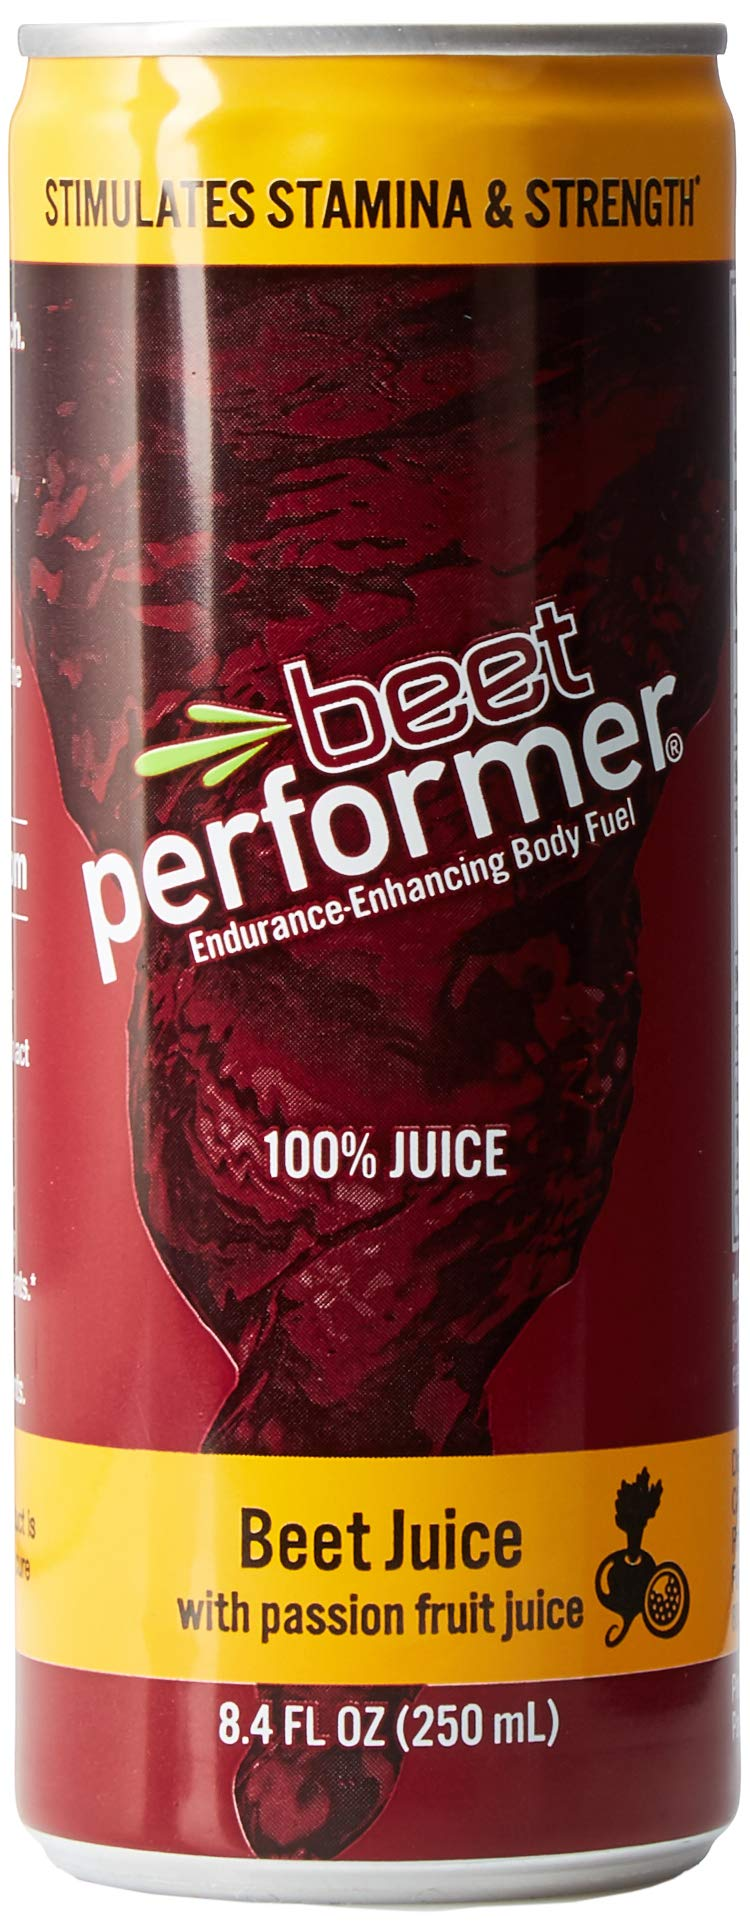 Beet Performer Beet Juice with Passion Fruit Juice 8.4 Fl. Oz. Can (12